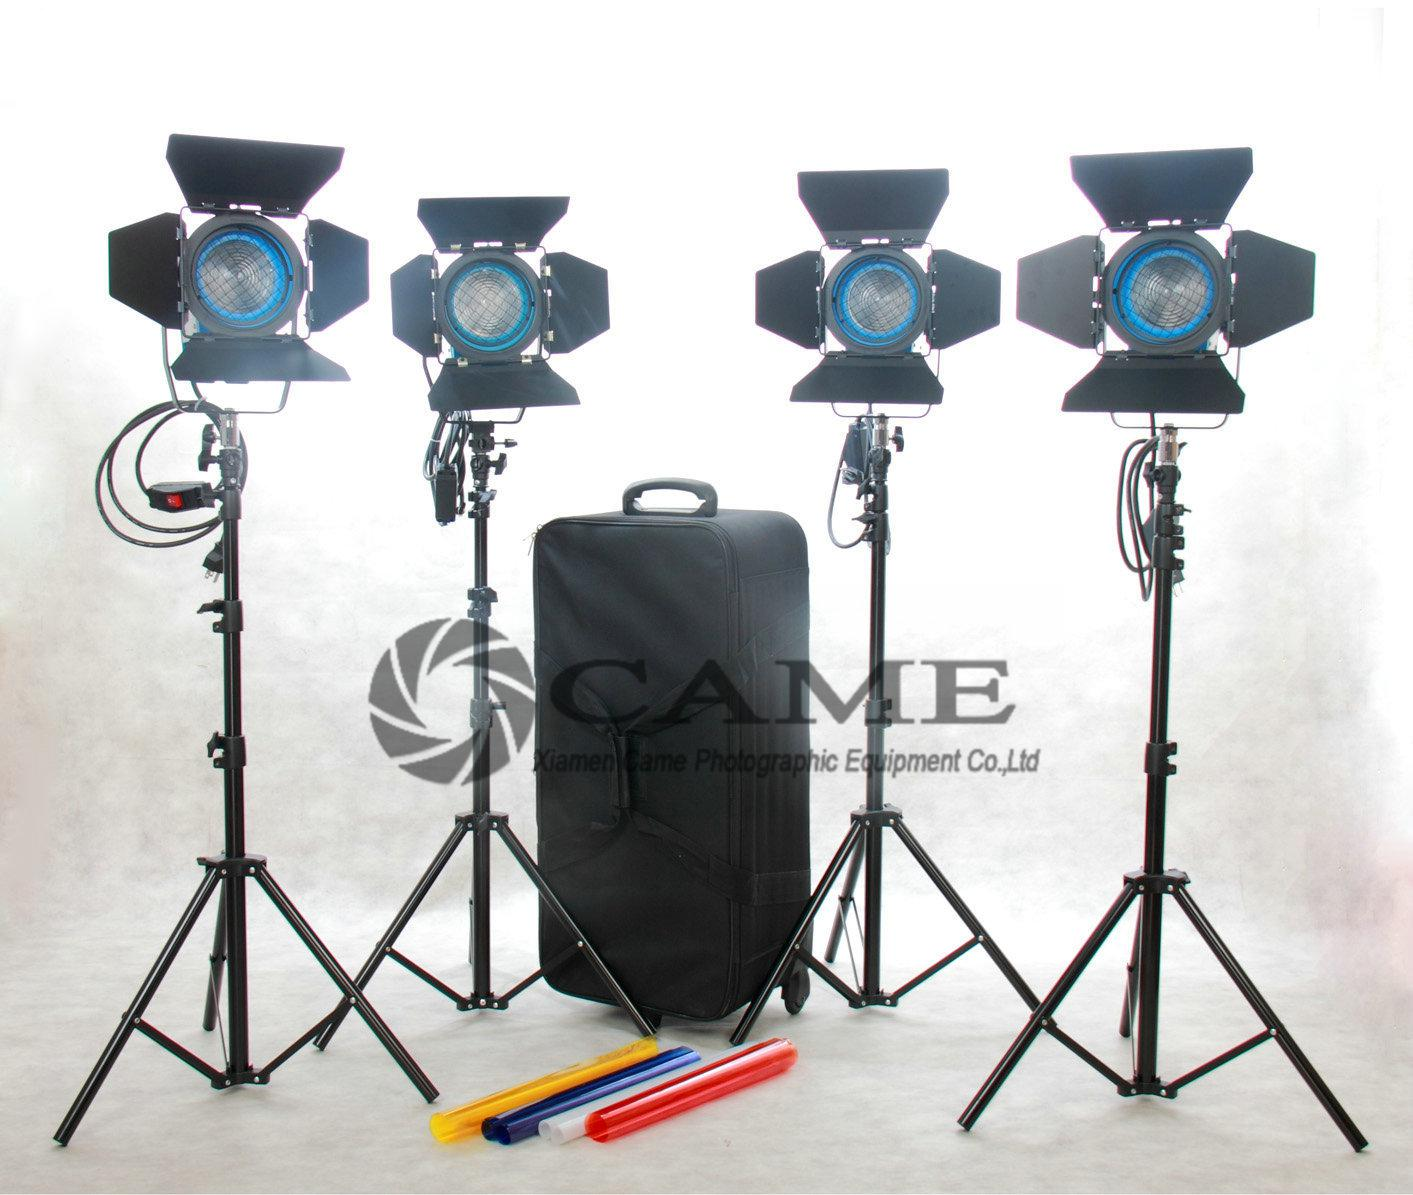 2018 4x650w Fresnel Tungsten Lights Kit Video Continuous Lighting ...